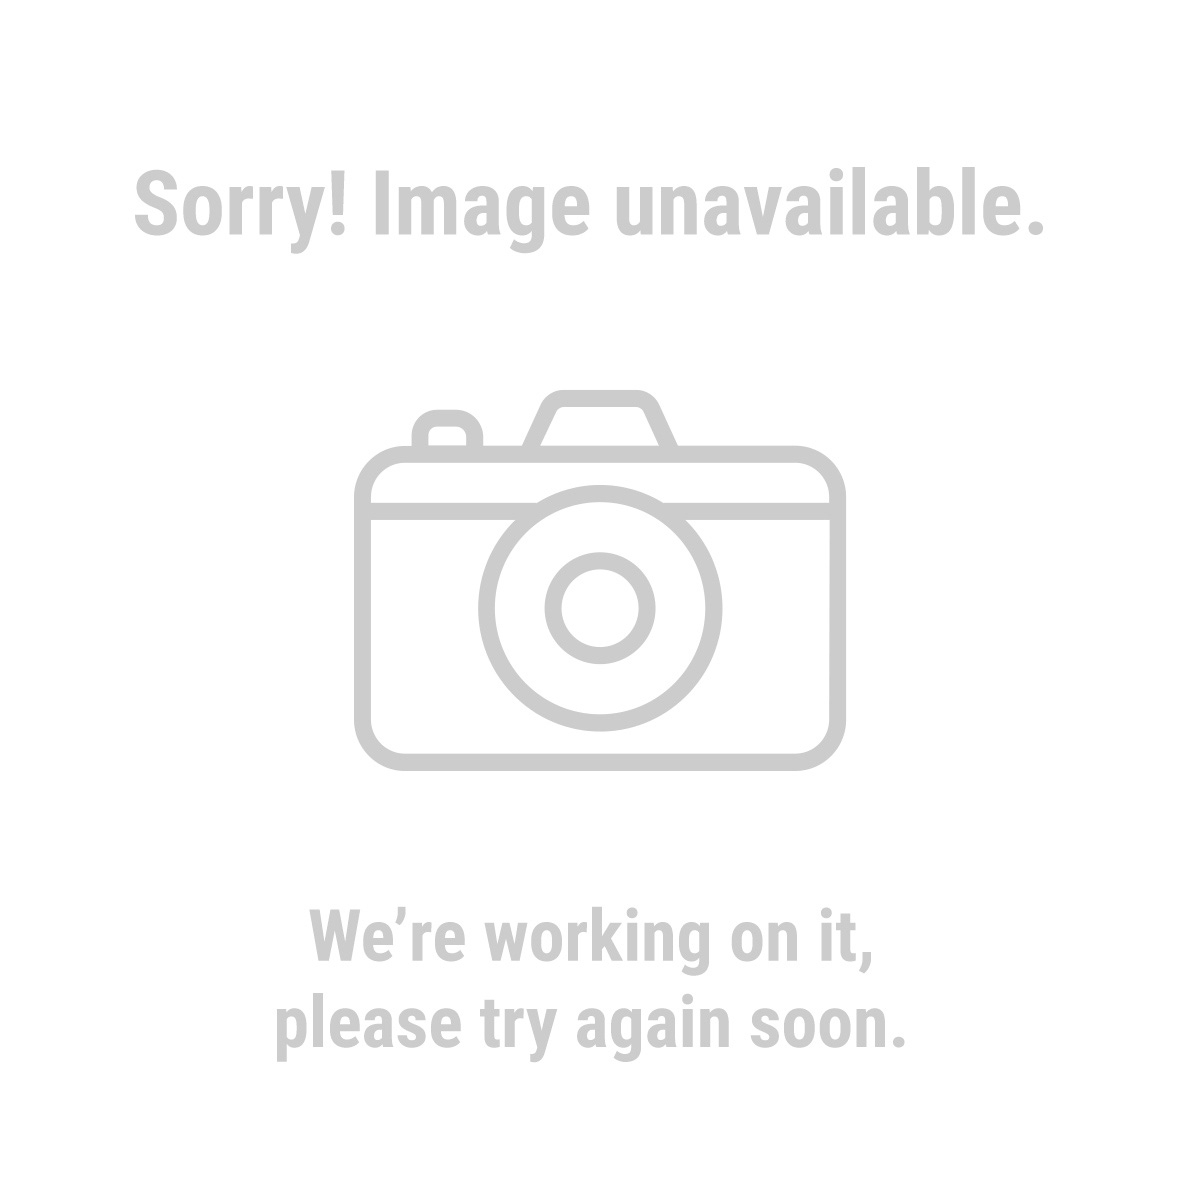 Warrior 60487 4 in. Carbon Steel Knotted Wire Wheel